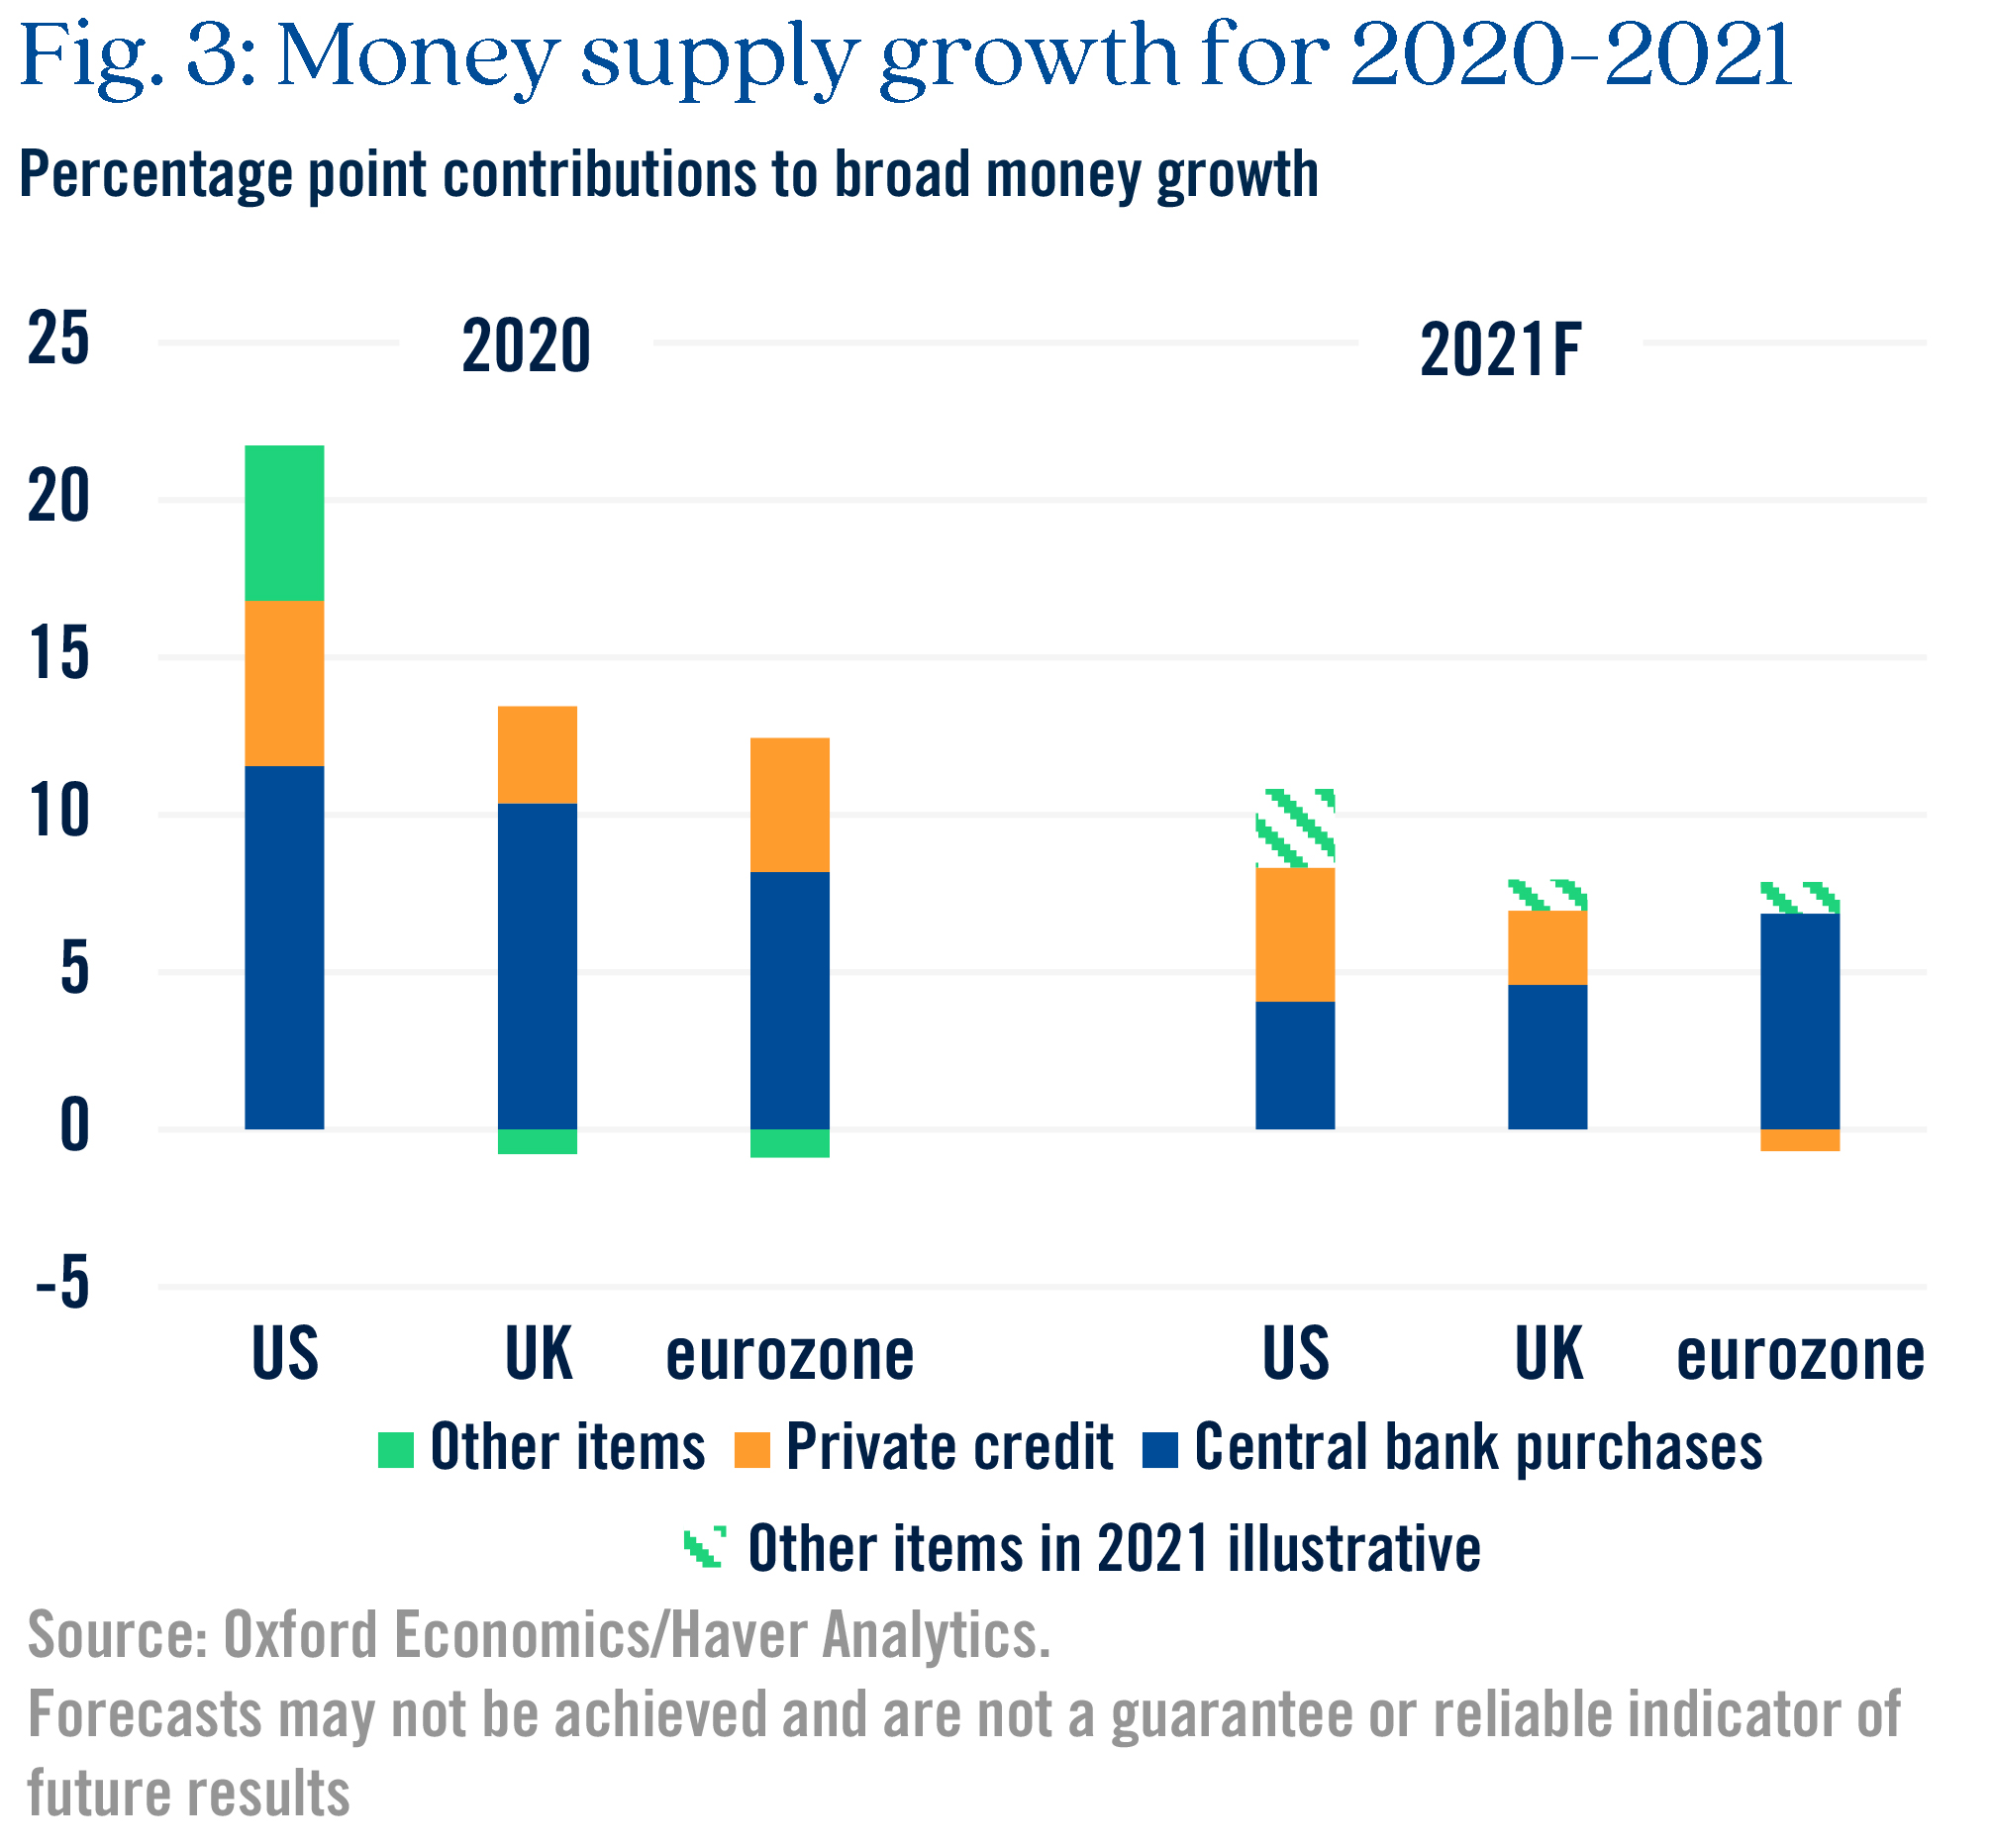 Figure 3 money supply growth for 2020-2021